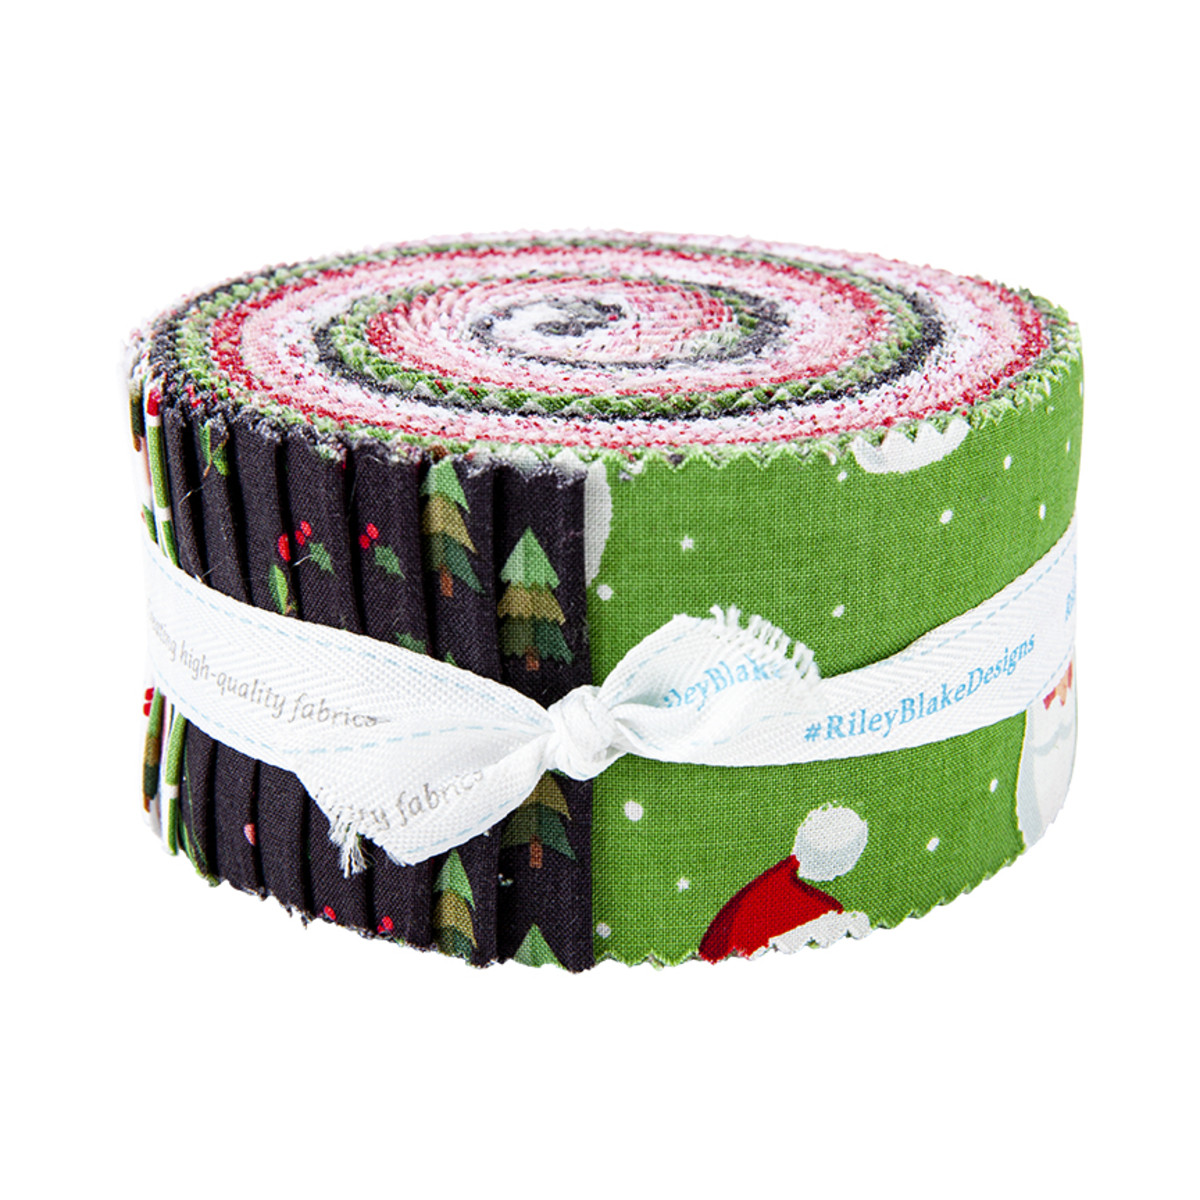 Riley Blake Jelly Roll - Holly Holiday by Christopher Thompson